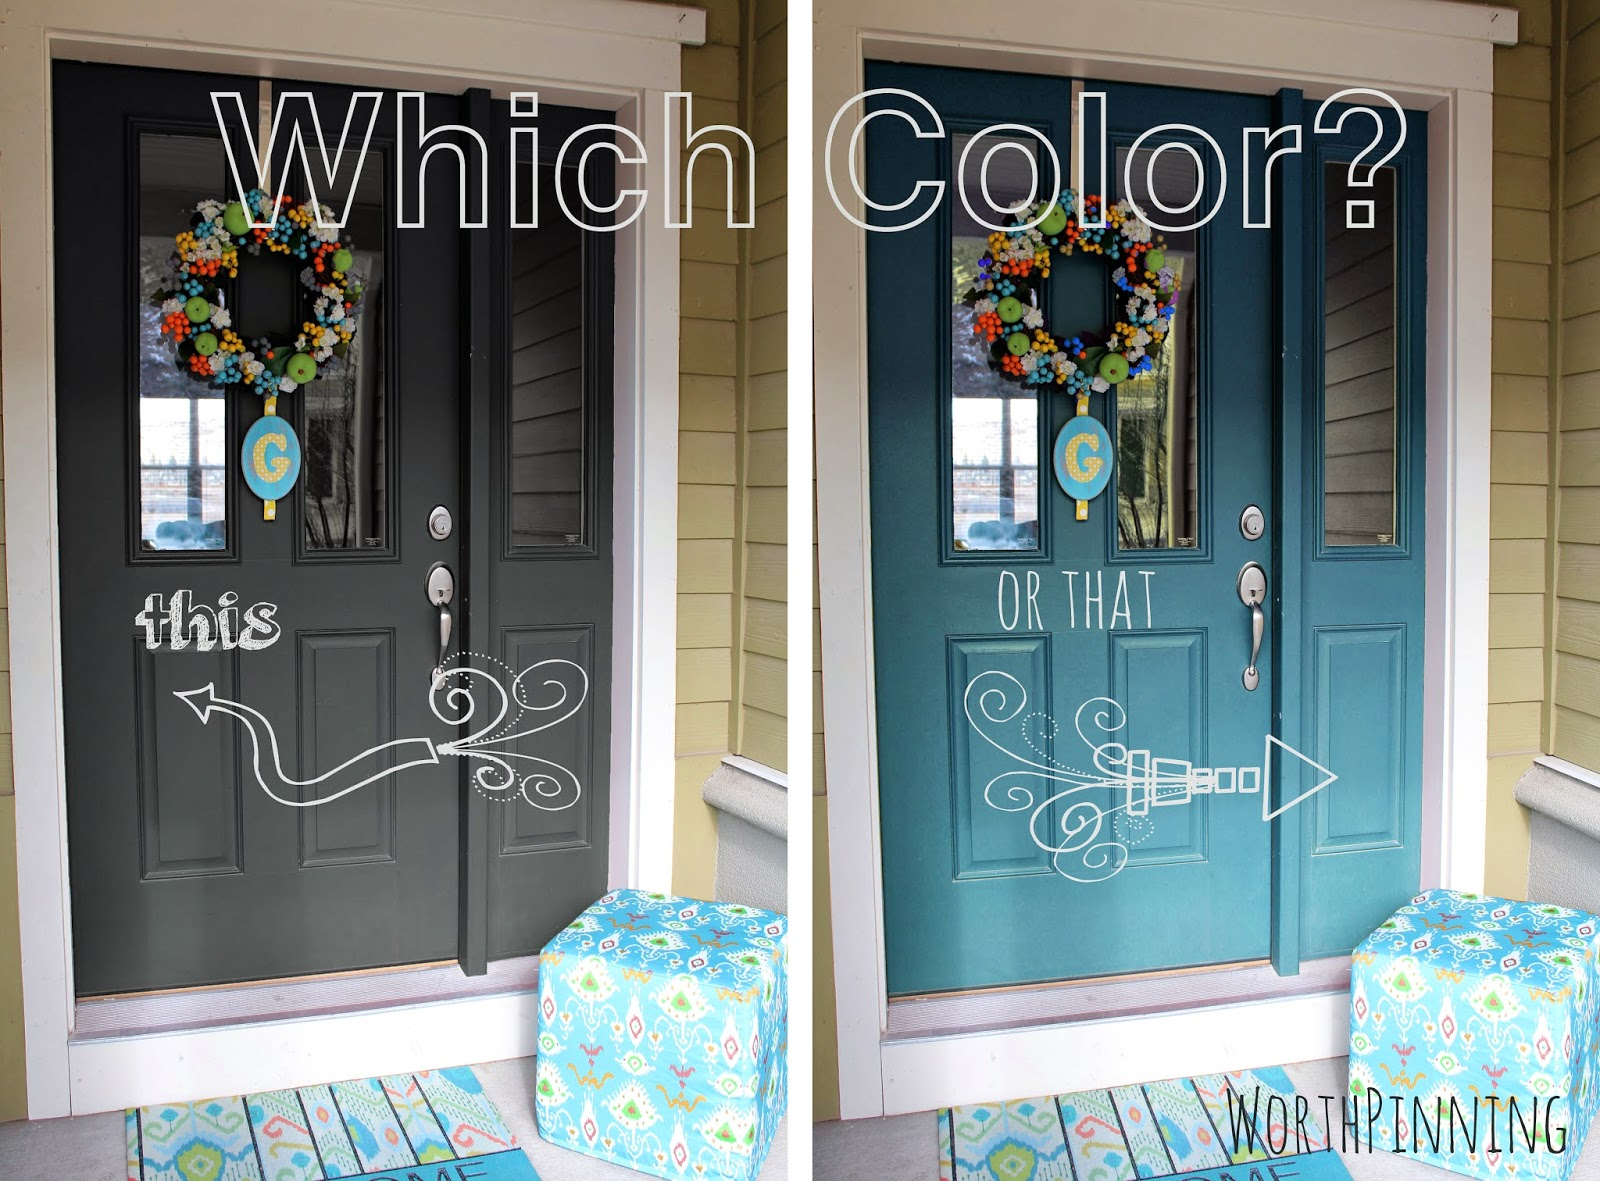 Gray Door or Teal Door? How about both?